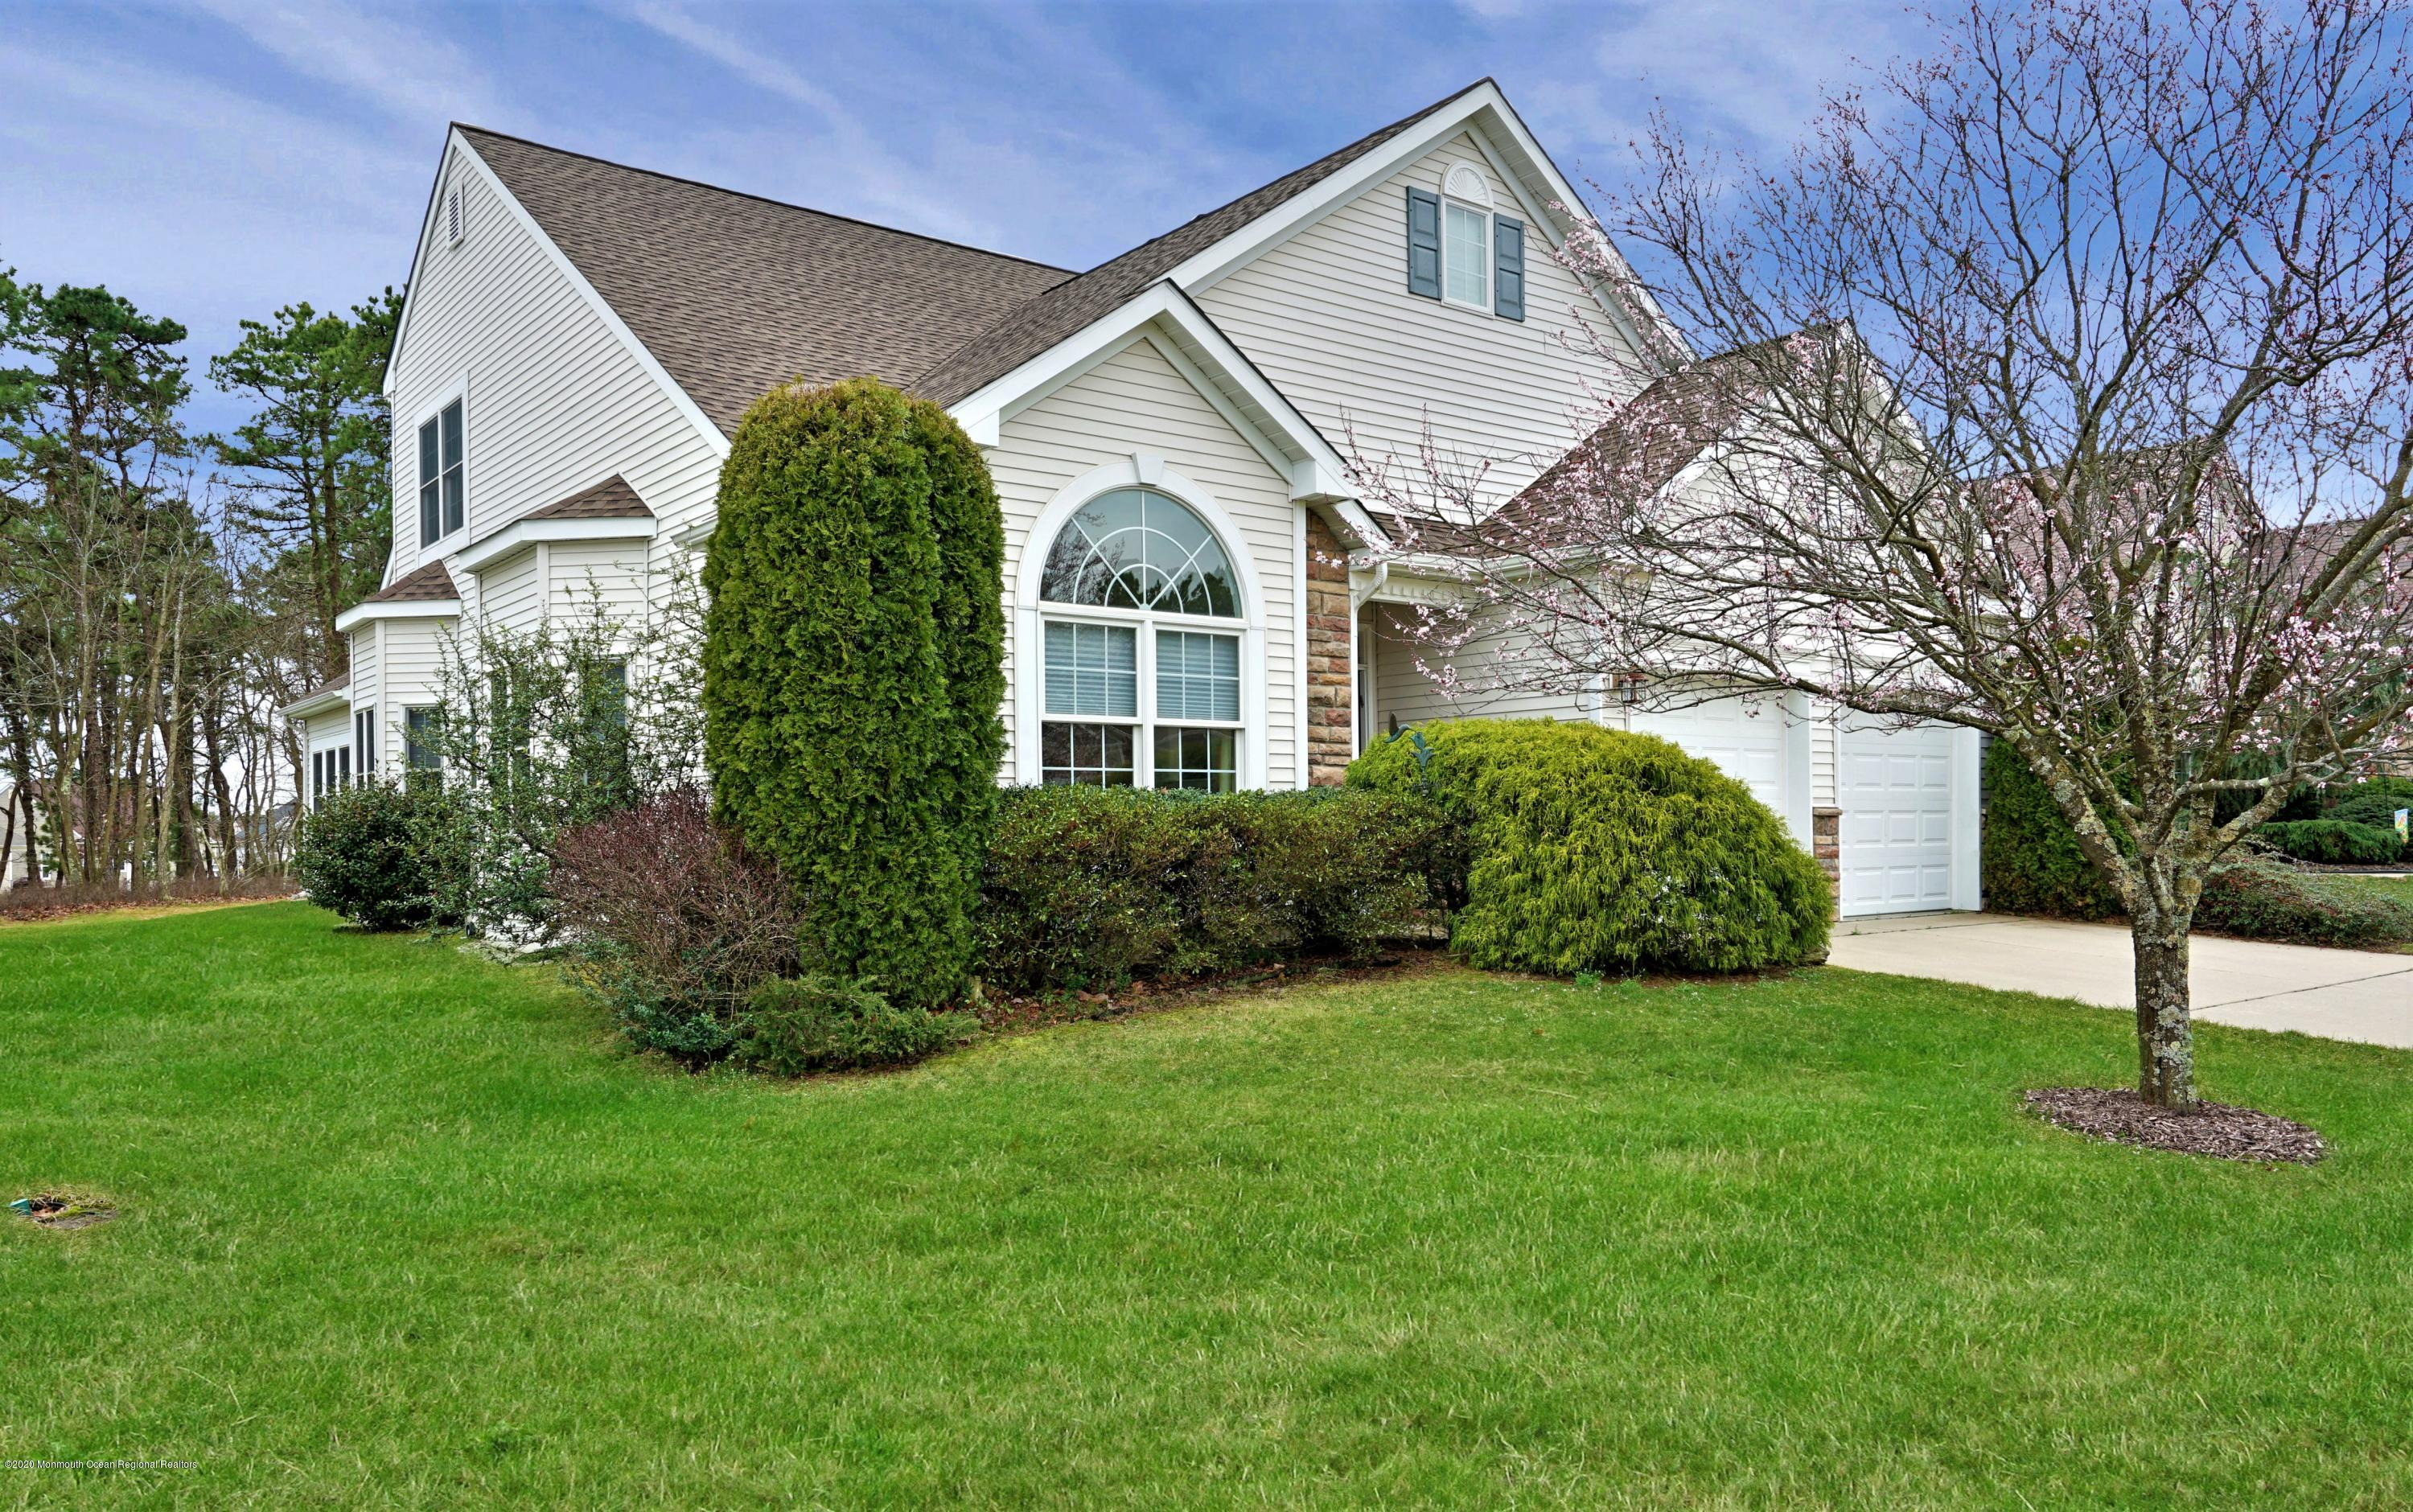 GREAT LOCATION - SOUTHWIND II W WOODED & GOLF COURSE VIEWS. ANDERSON WDWS, NEWER ROOF,  IMMACULATE HOME FEATURES KIT W SS APPL, HRDWD FLRS , FR W CATH CEILING, BRIGHT SUN ROOM W SLIDERS TO PRIv PATIO W MOTORIZED AWNING.  1ST FLR MASTER SUITE W WALK IN CLOSET  & FULL BATH W SHOWER & TUB.  A 1ST FLR GUEST BEDROOM WITH FULL BTH.  A LOFT W BALCONY & LARGE GUEST BDRM W WALK IN CLOSET & FULL BATH.  TRUE RESORT STYLE LIVING IN GREENBRIAR OCEANAIRE GOLF & COUNTRY CLUB.  A HUGE CLUBHOUSE W EVERY AMENITY YOU COULD WISH FOR INCLUDING BOCCE, TENNIS, PICKLE BALL, DRIVING RANGE INDOOR/OUTDOOR POOLS.  AN 18 HOLE CHAMPIONSHIP PRIVATE GOLF COURSE & PRIVATE RESTAURANT & PUB COMPLETES THIS WONDERFUL LIFE!  ACTIVE LIVING AT IT'S VERY BEST... click link below http://homes.motioncitymedia.com/86panc